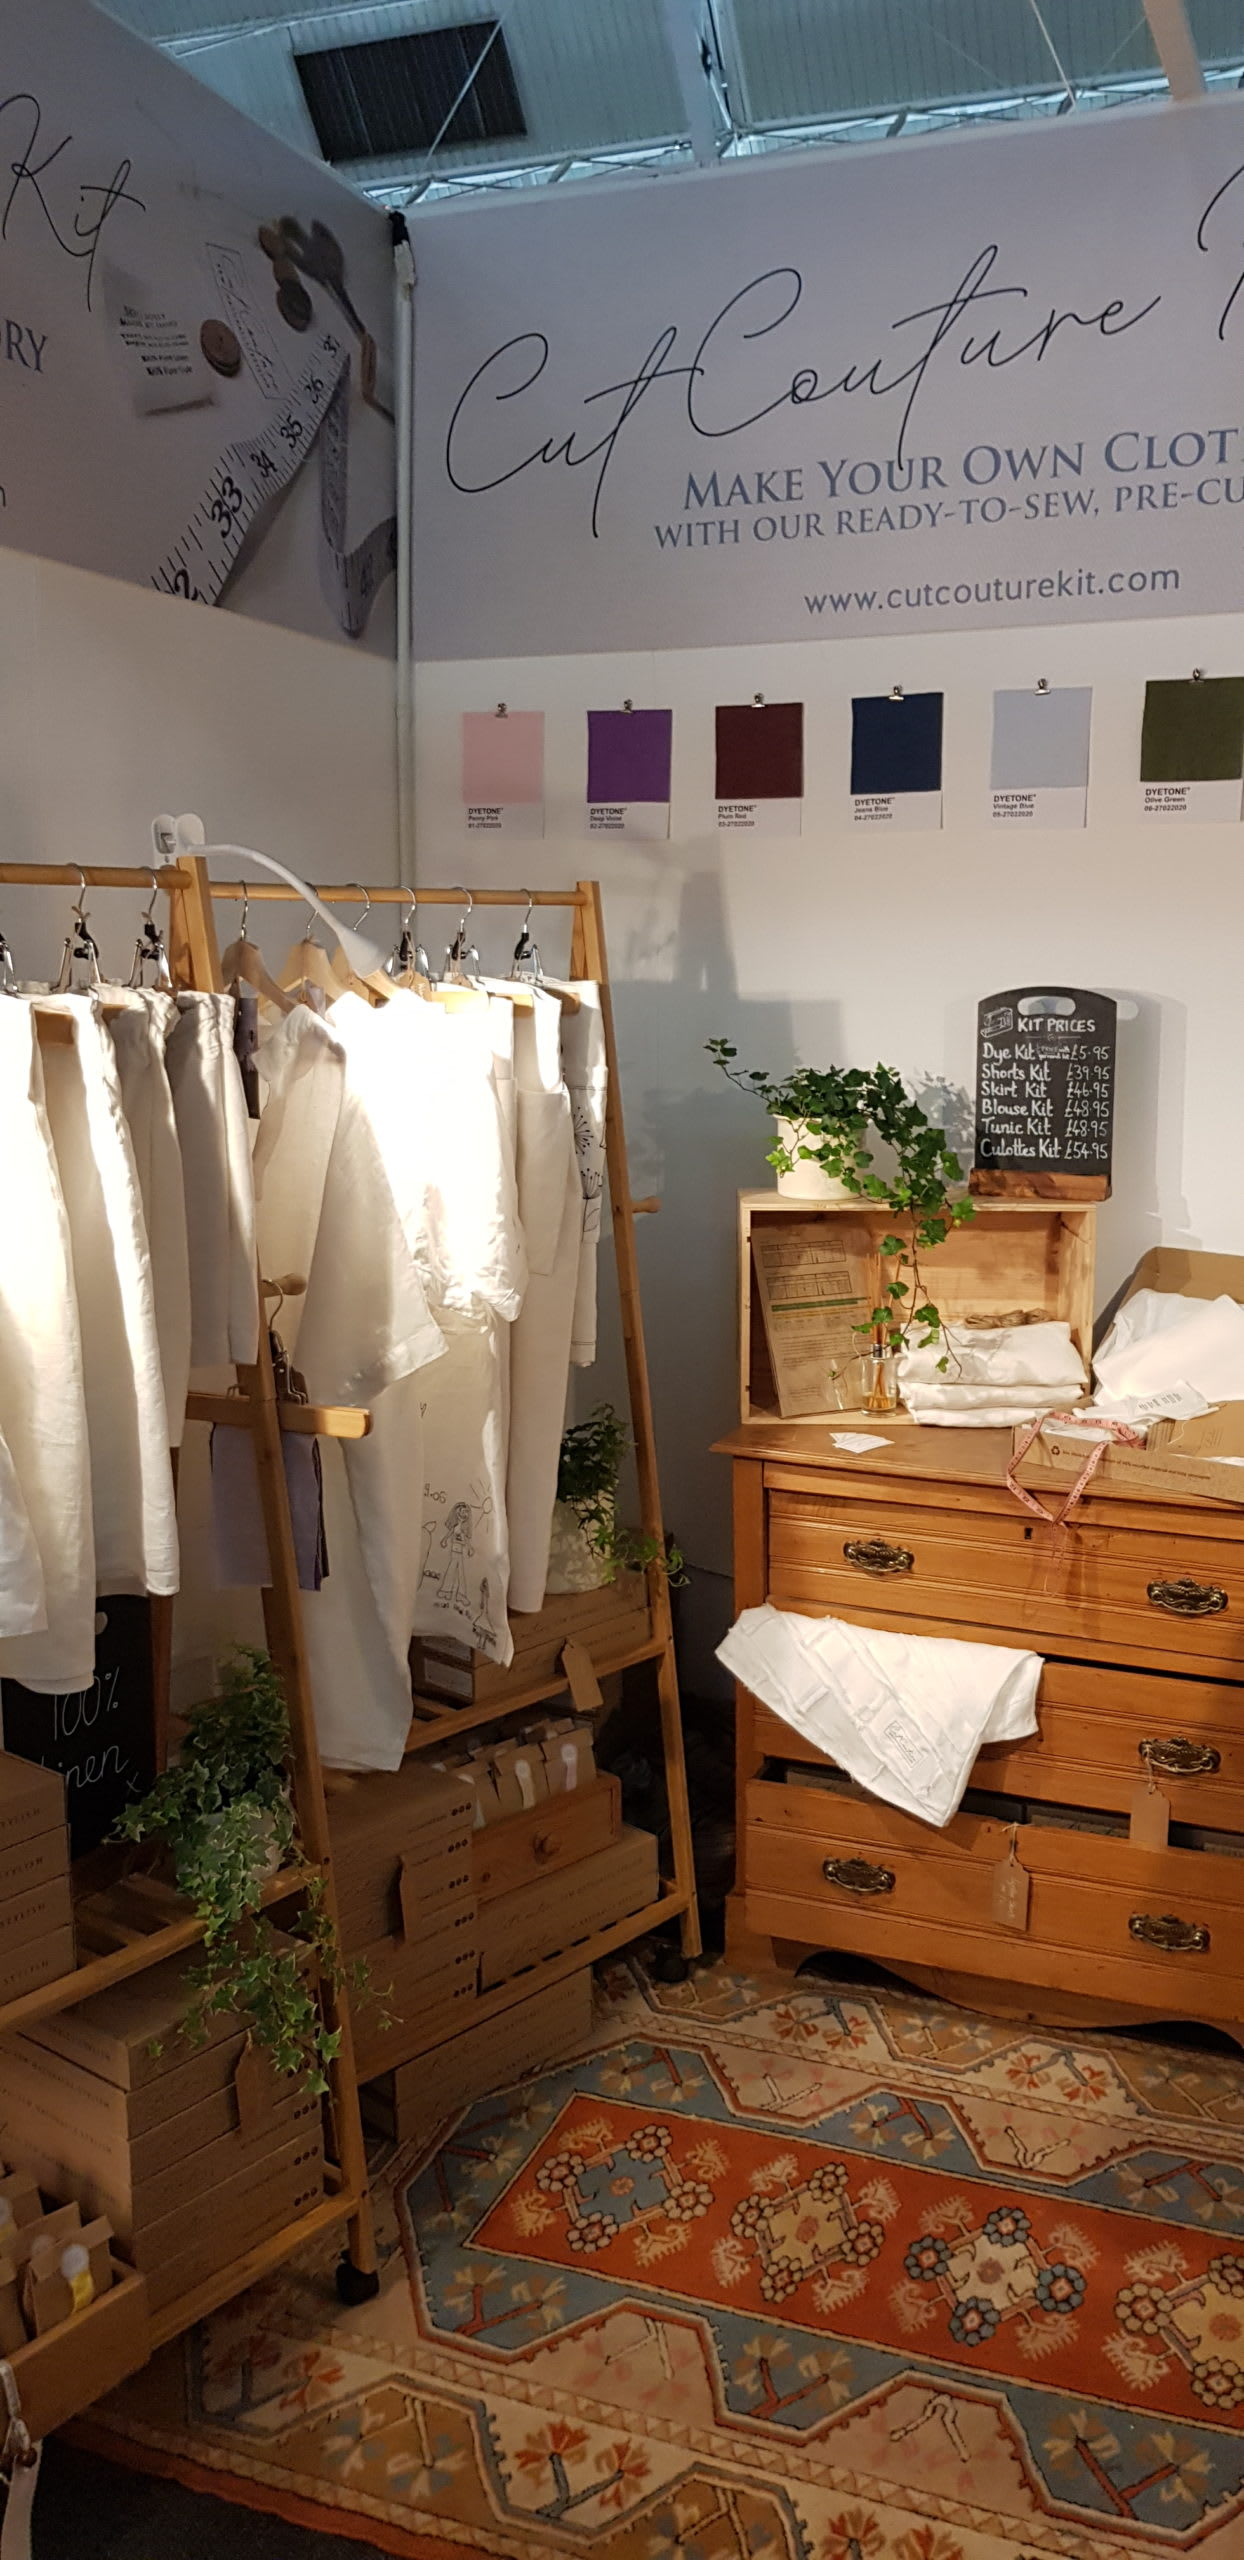 linen clothes on a rail, pine drawers